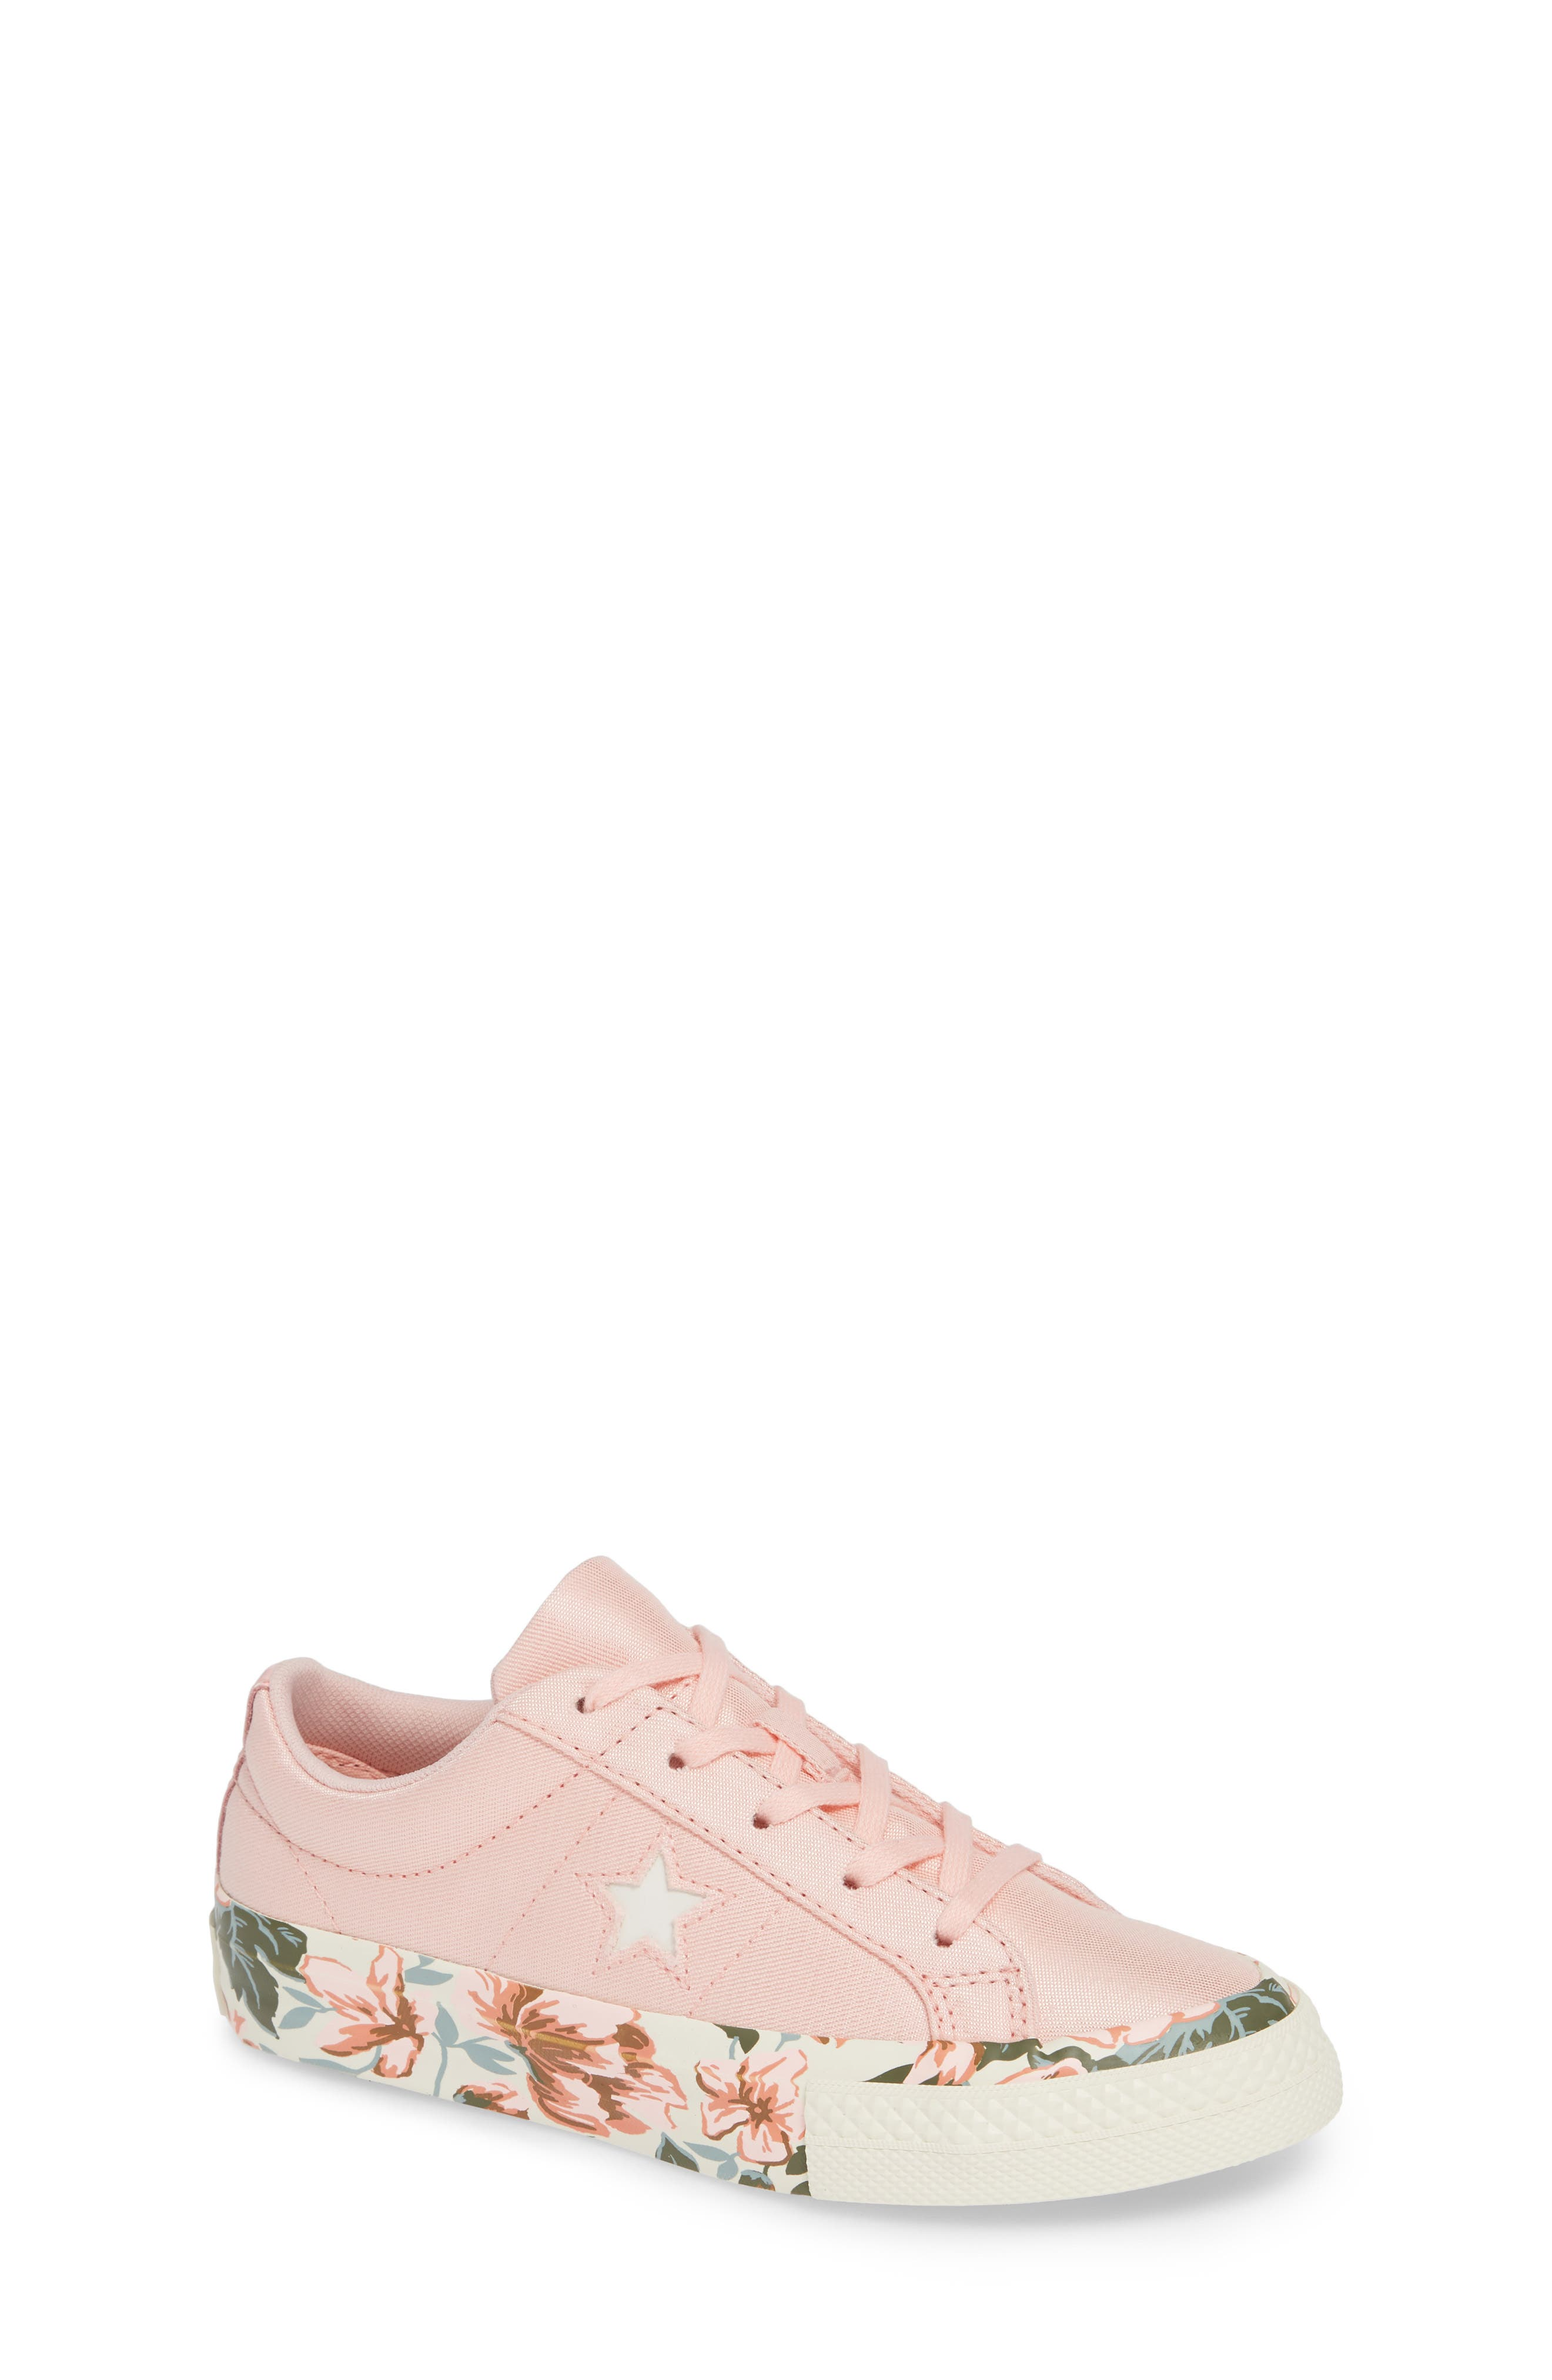 One Star Floral Sneaker,                             Main thumbnail 1, color,                             690